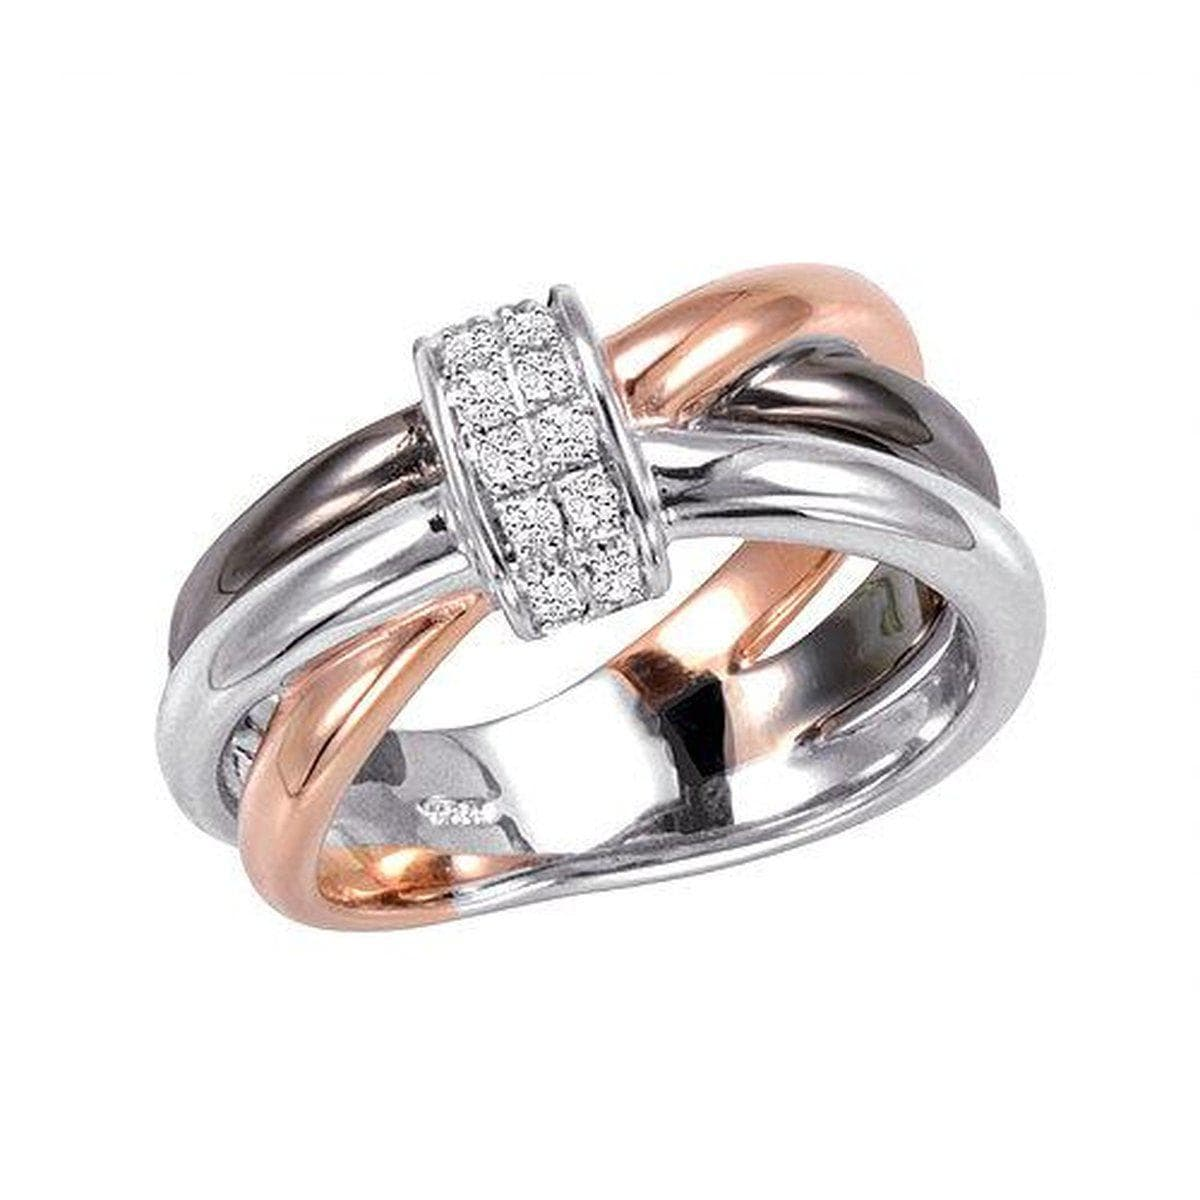 Rose Gold & Rhodium Plated Sterling Silver White Sapphire Ring - 42/85727-Breuning-Renee Taylor Gallery